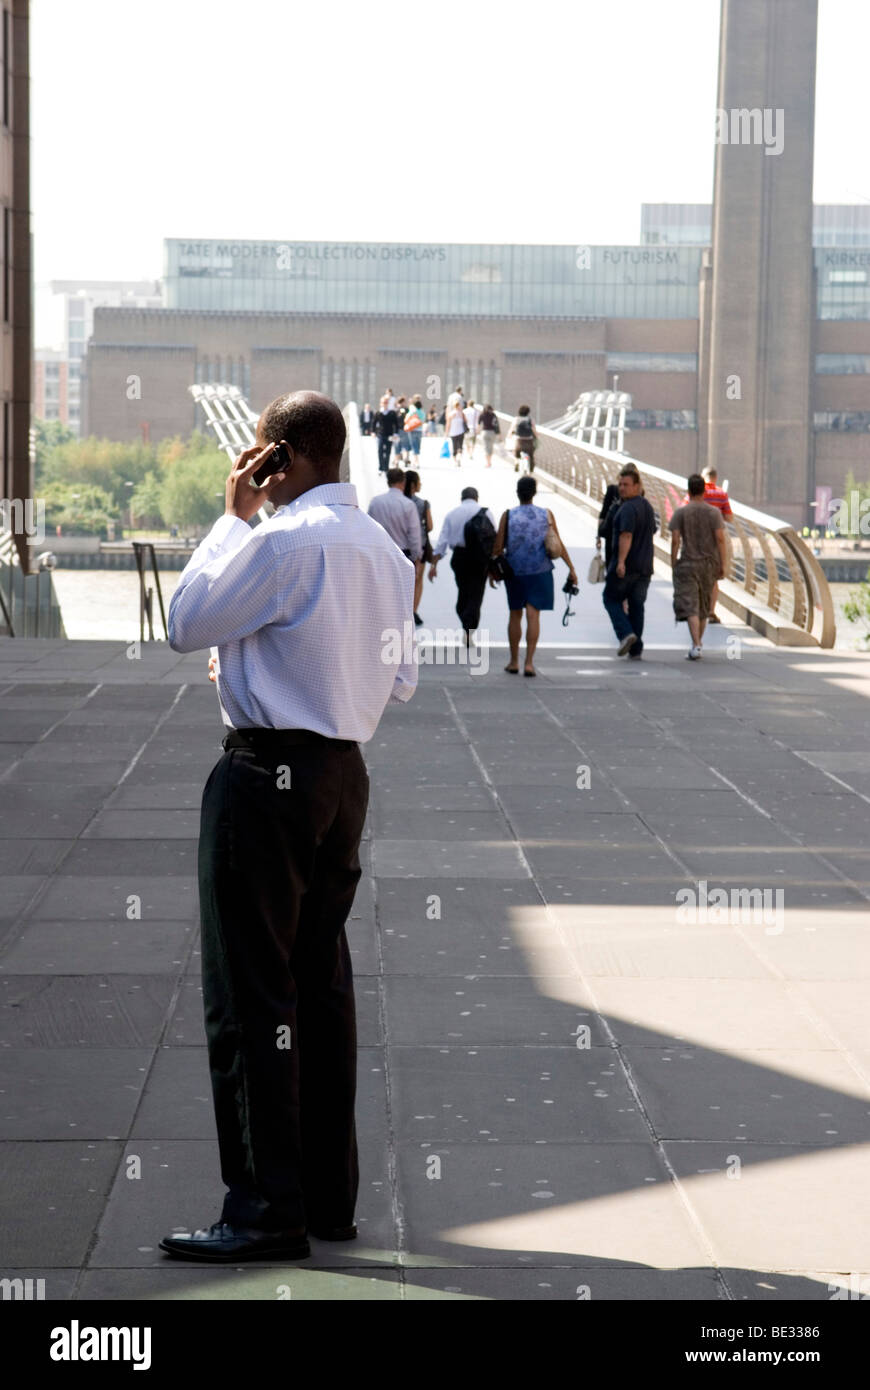 man stands while talking on mobile phone with the millenium bridge and the tate modern in the background - Stock Image